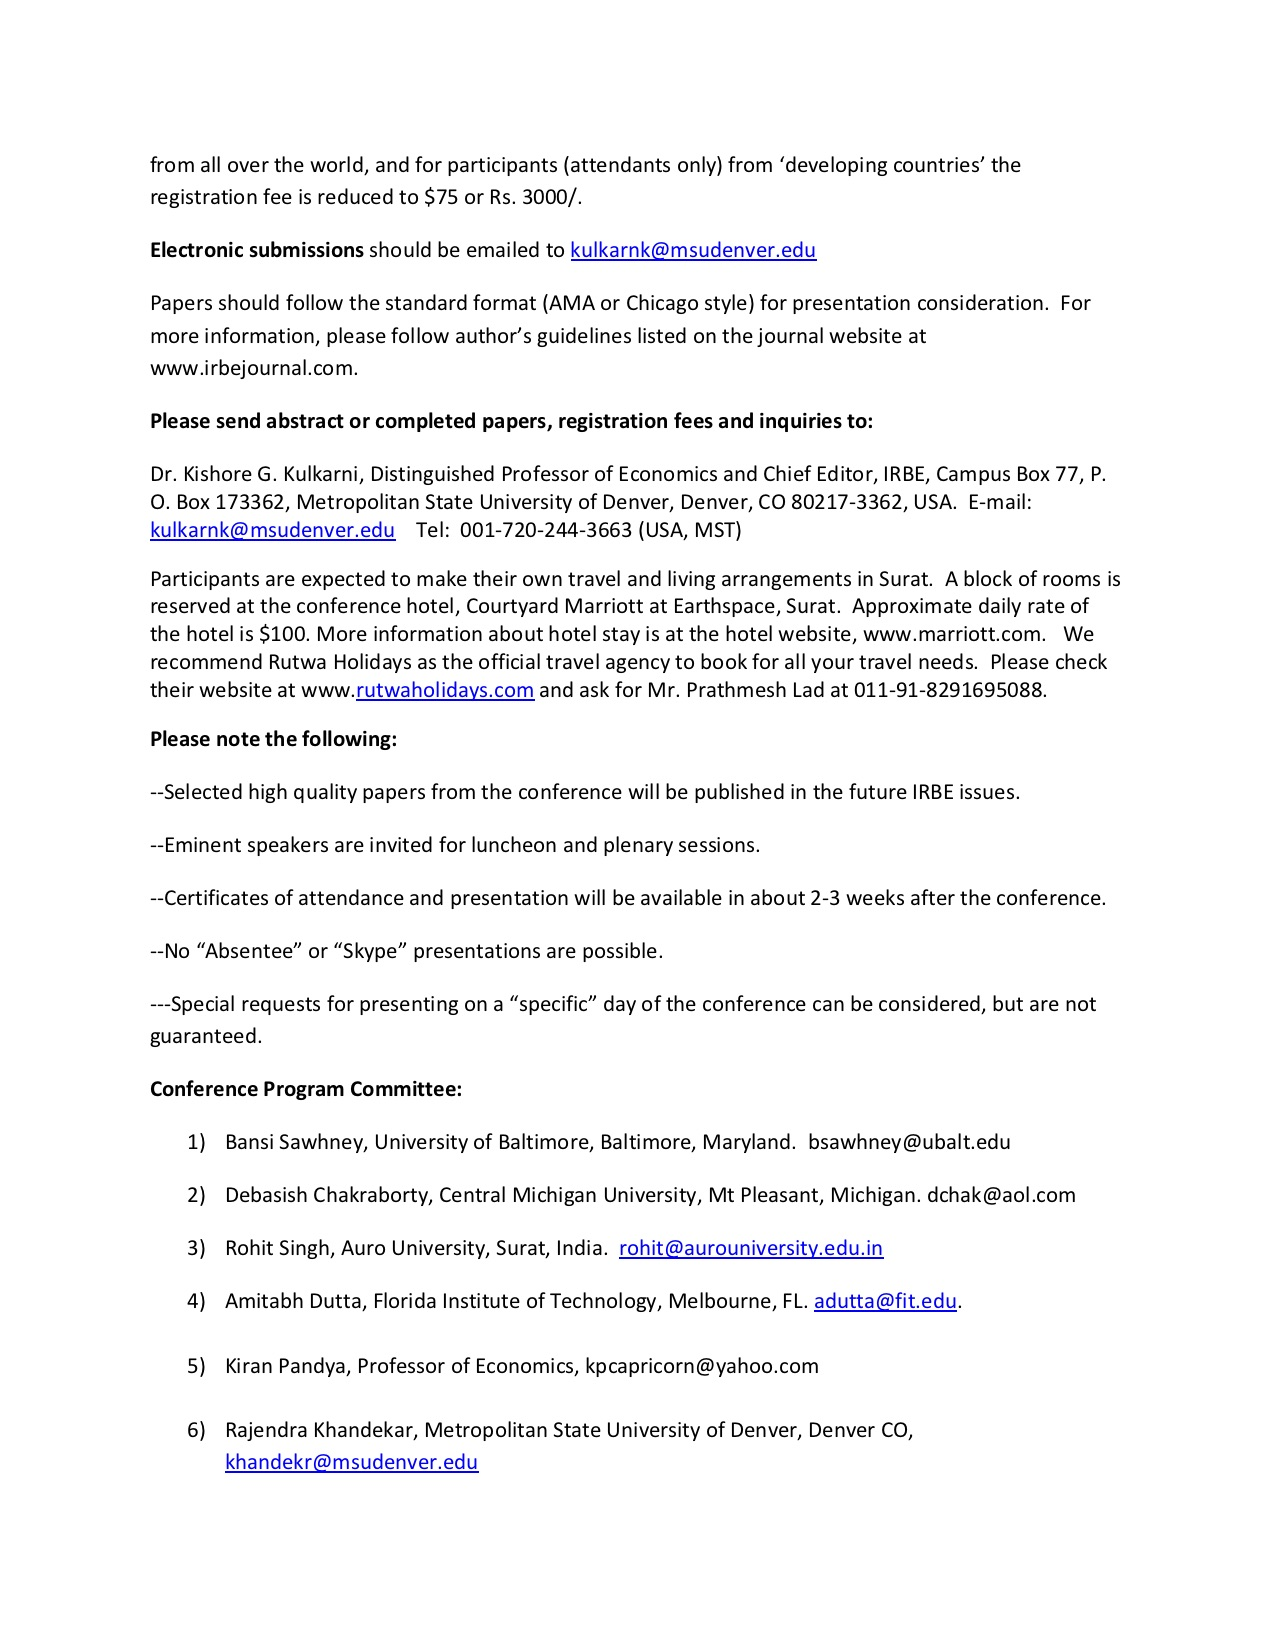 call for papers for December 2019 irbe conference revised updated page 2.jpg